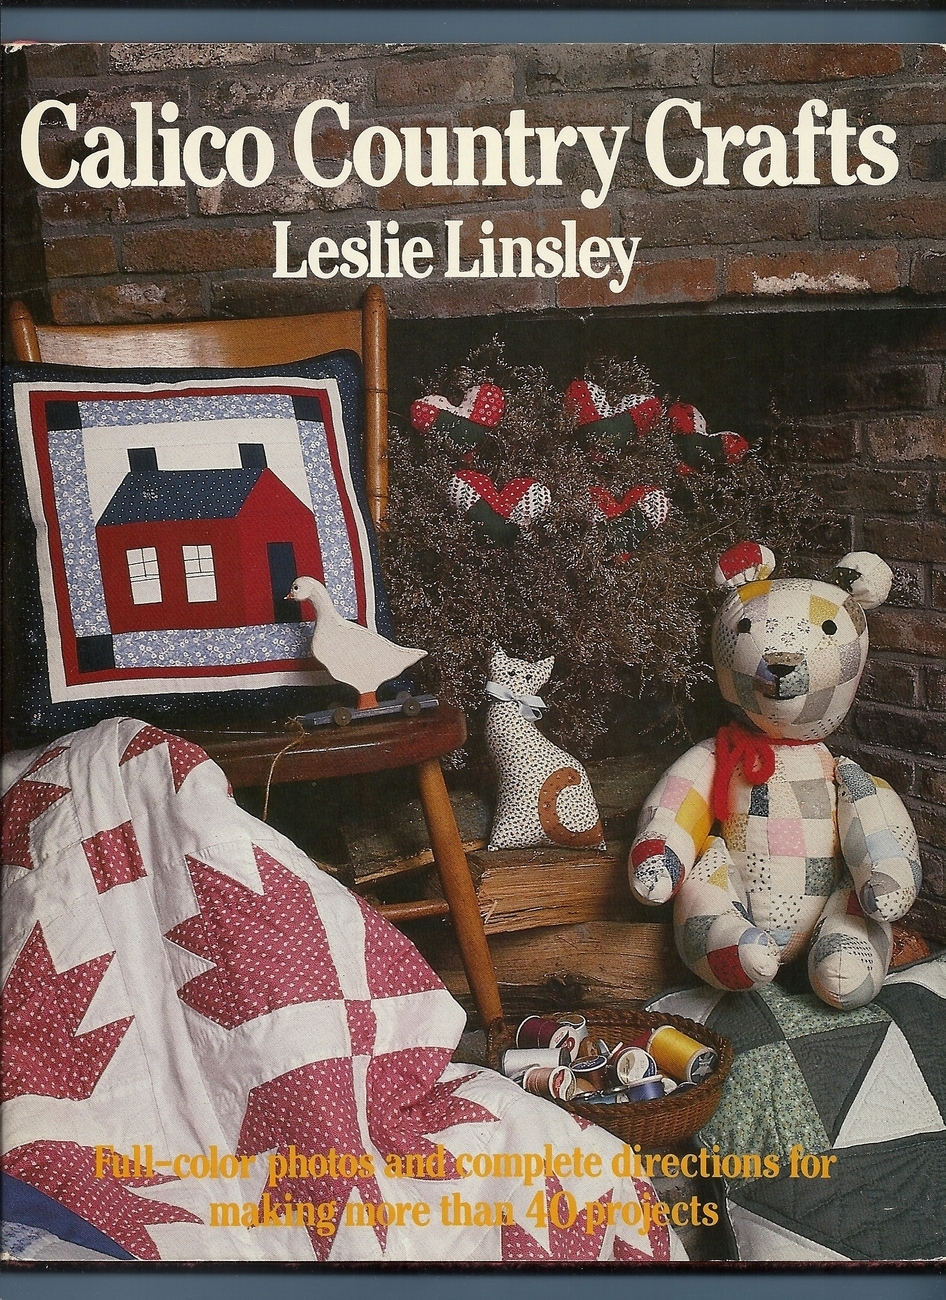 Home » Indizona » Calico Country Crafts Leslie Linsley Over 40